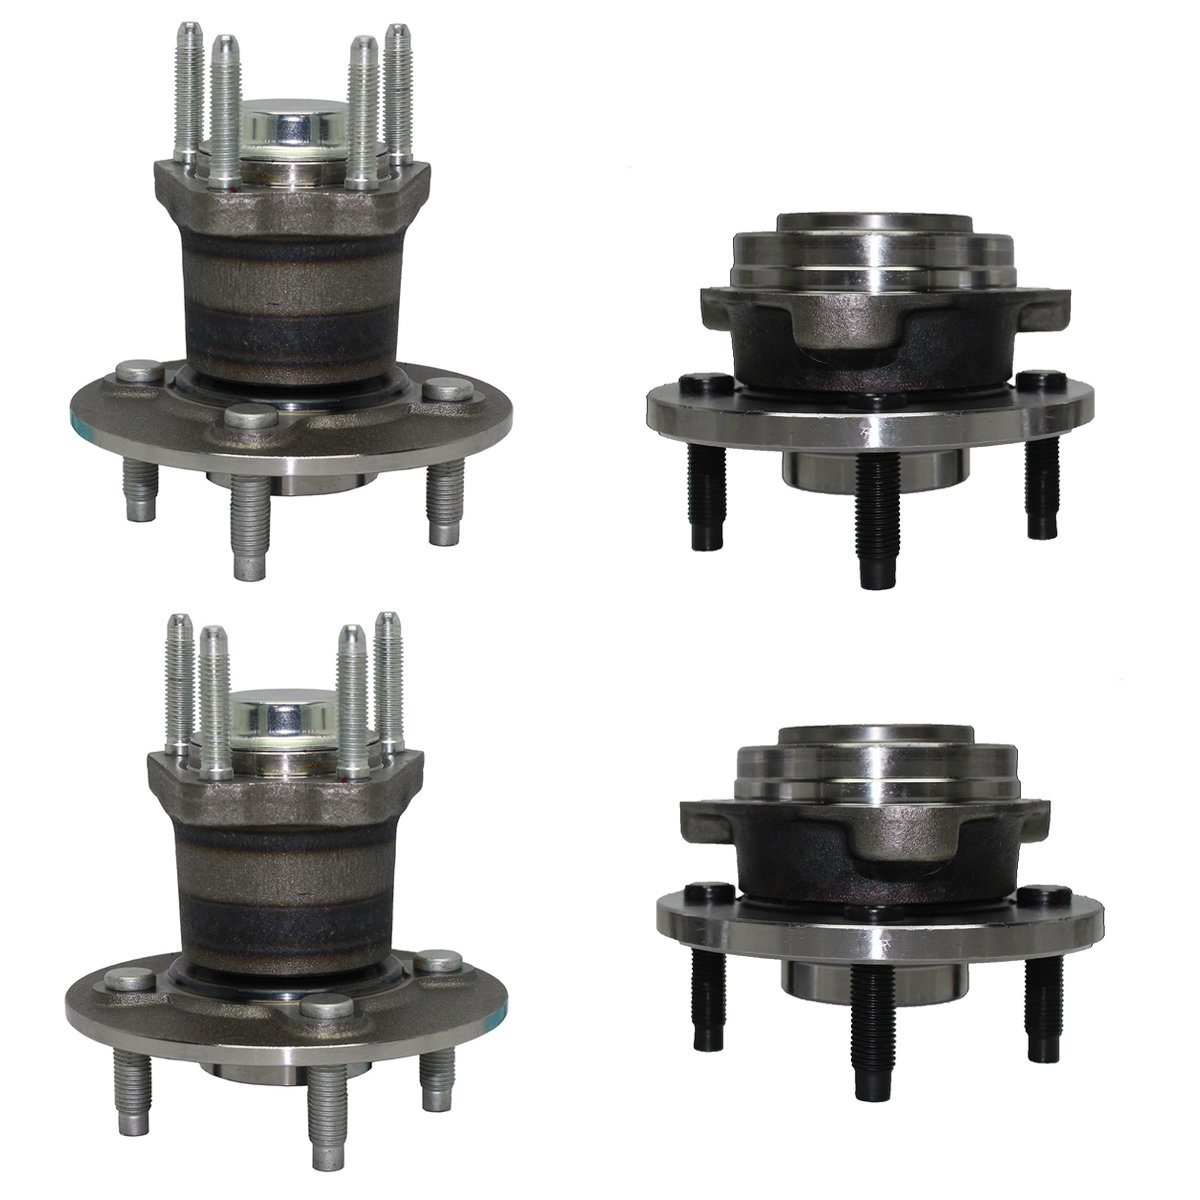 Detroit Axle - 4-LUG Non-ABS Front & Rear Wheel Bearing and Hub Assembly Set for 2007-2009 Pontiac G5 - [2005-2006 Pontiac Pursuit] 2005-2009 Chevrolet Cobalt Ex. SS [2003-2007 Saturn Ion]